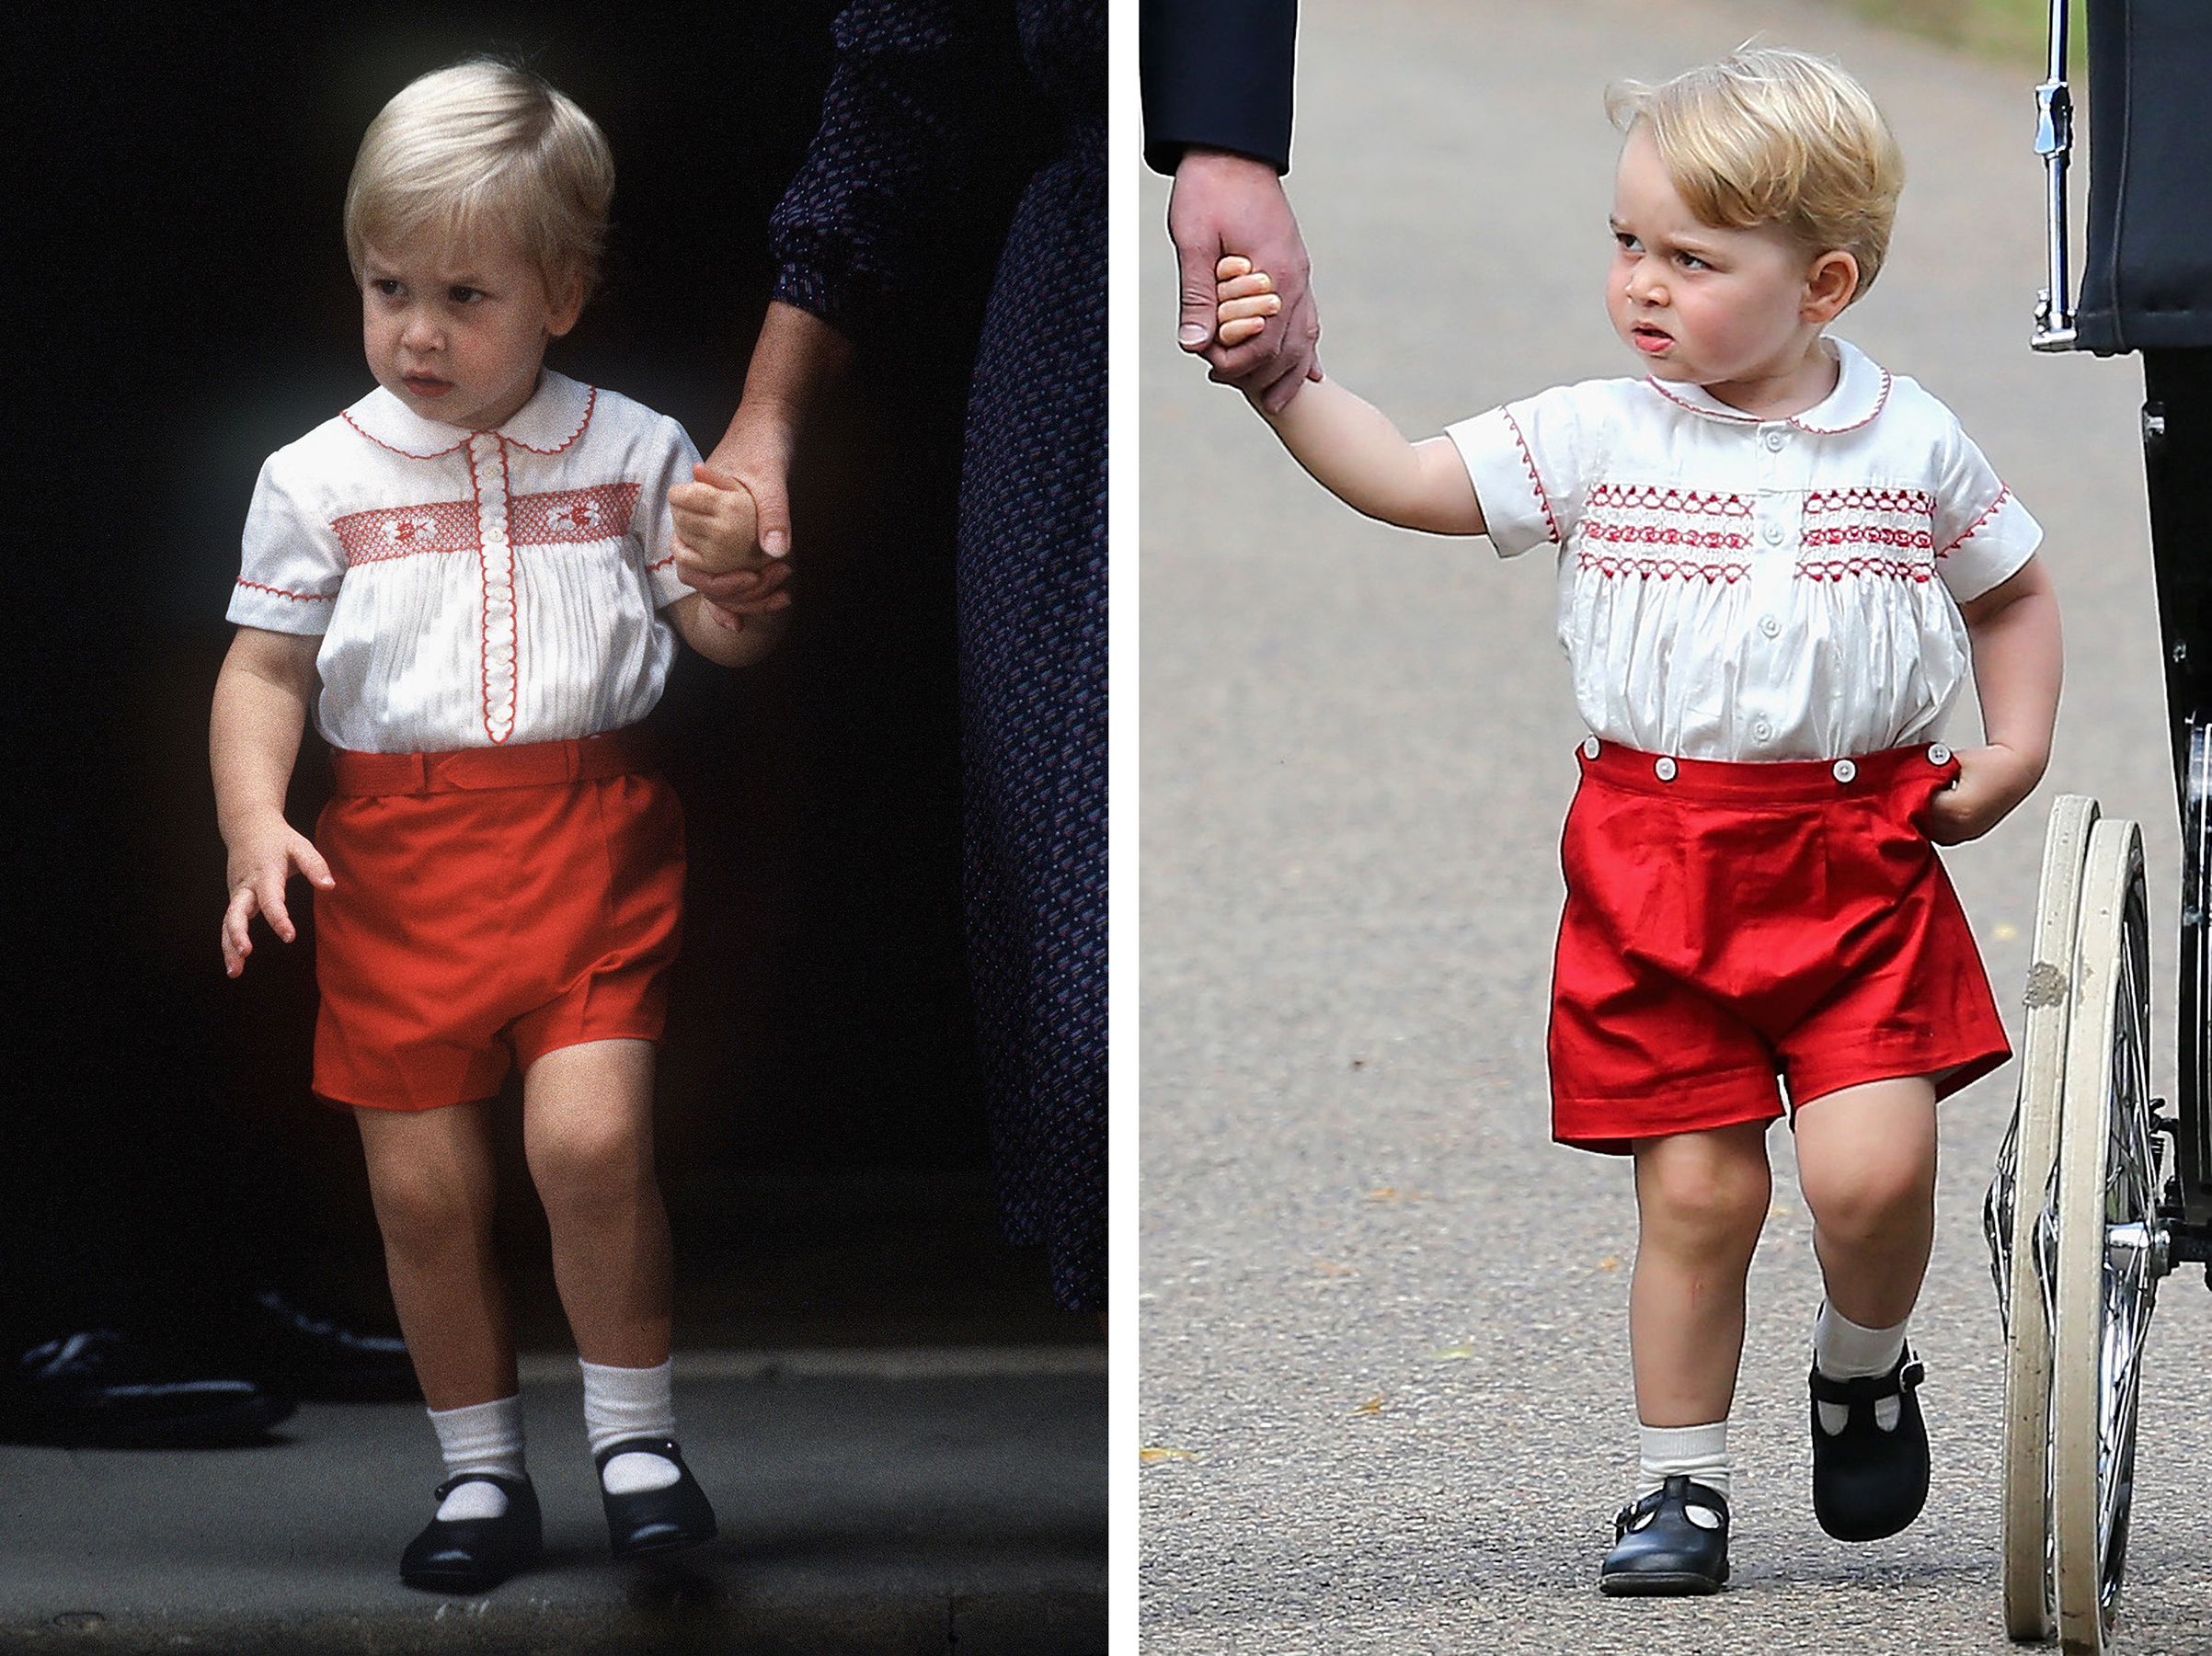 Prince William (L) and Prince George wearing similar clothing.